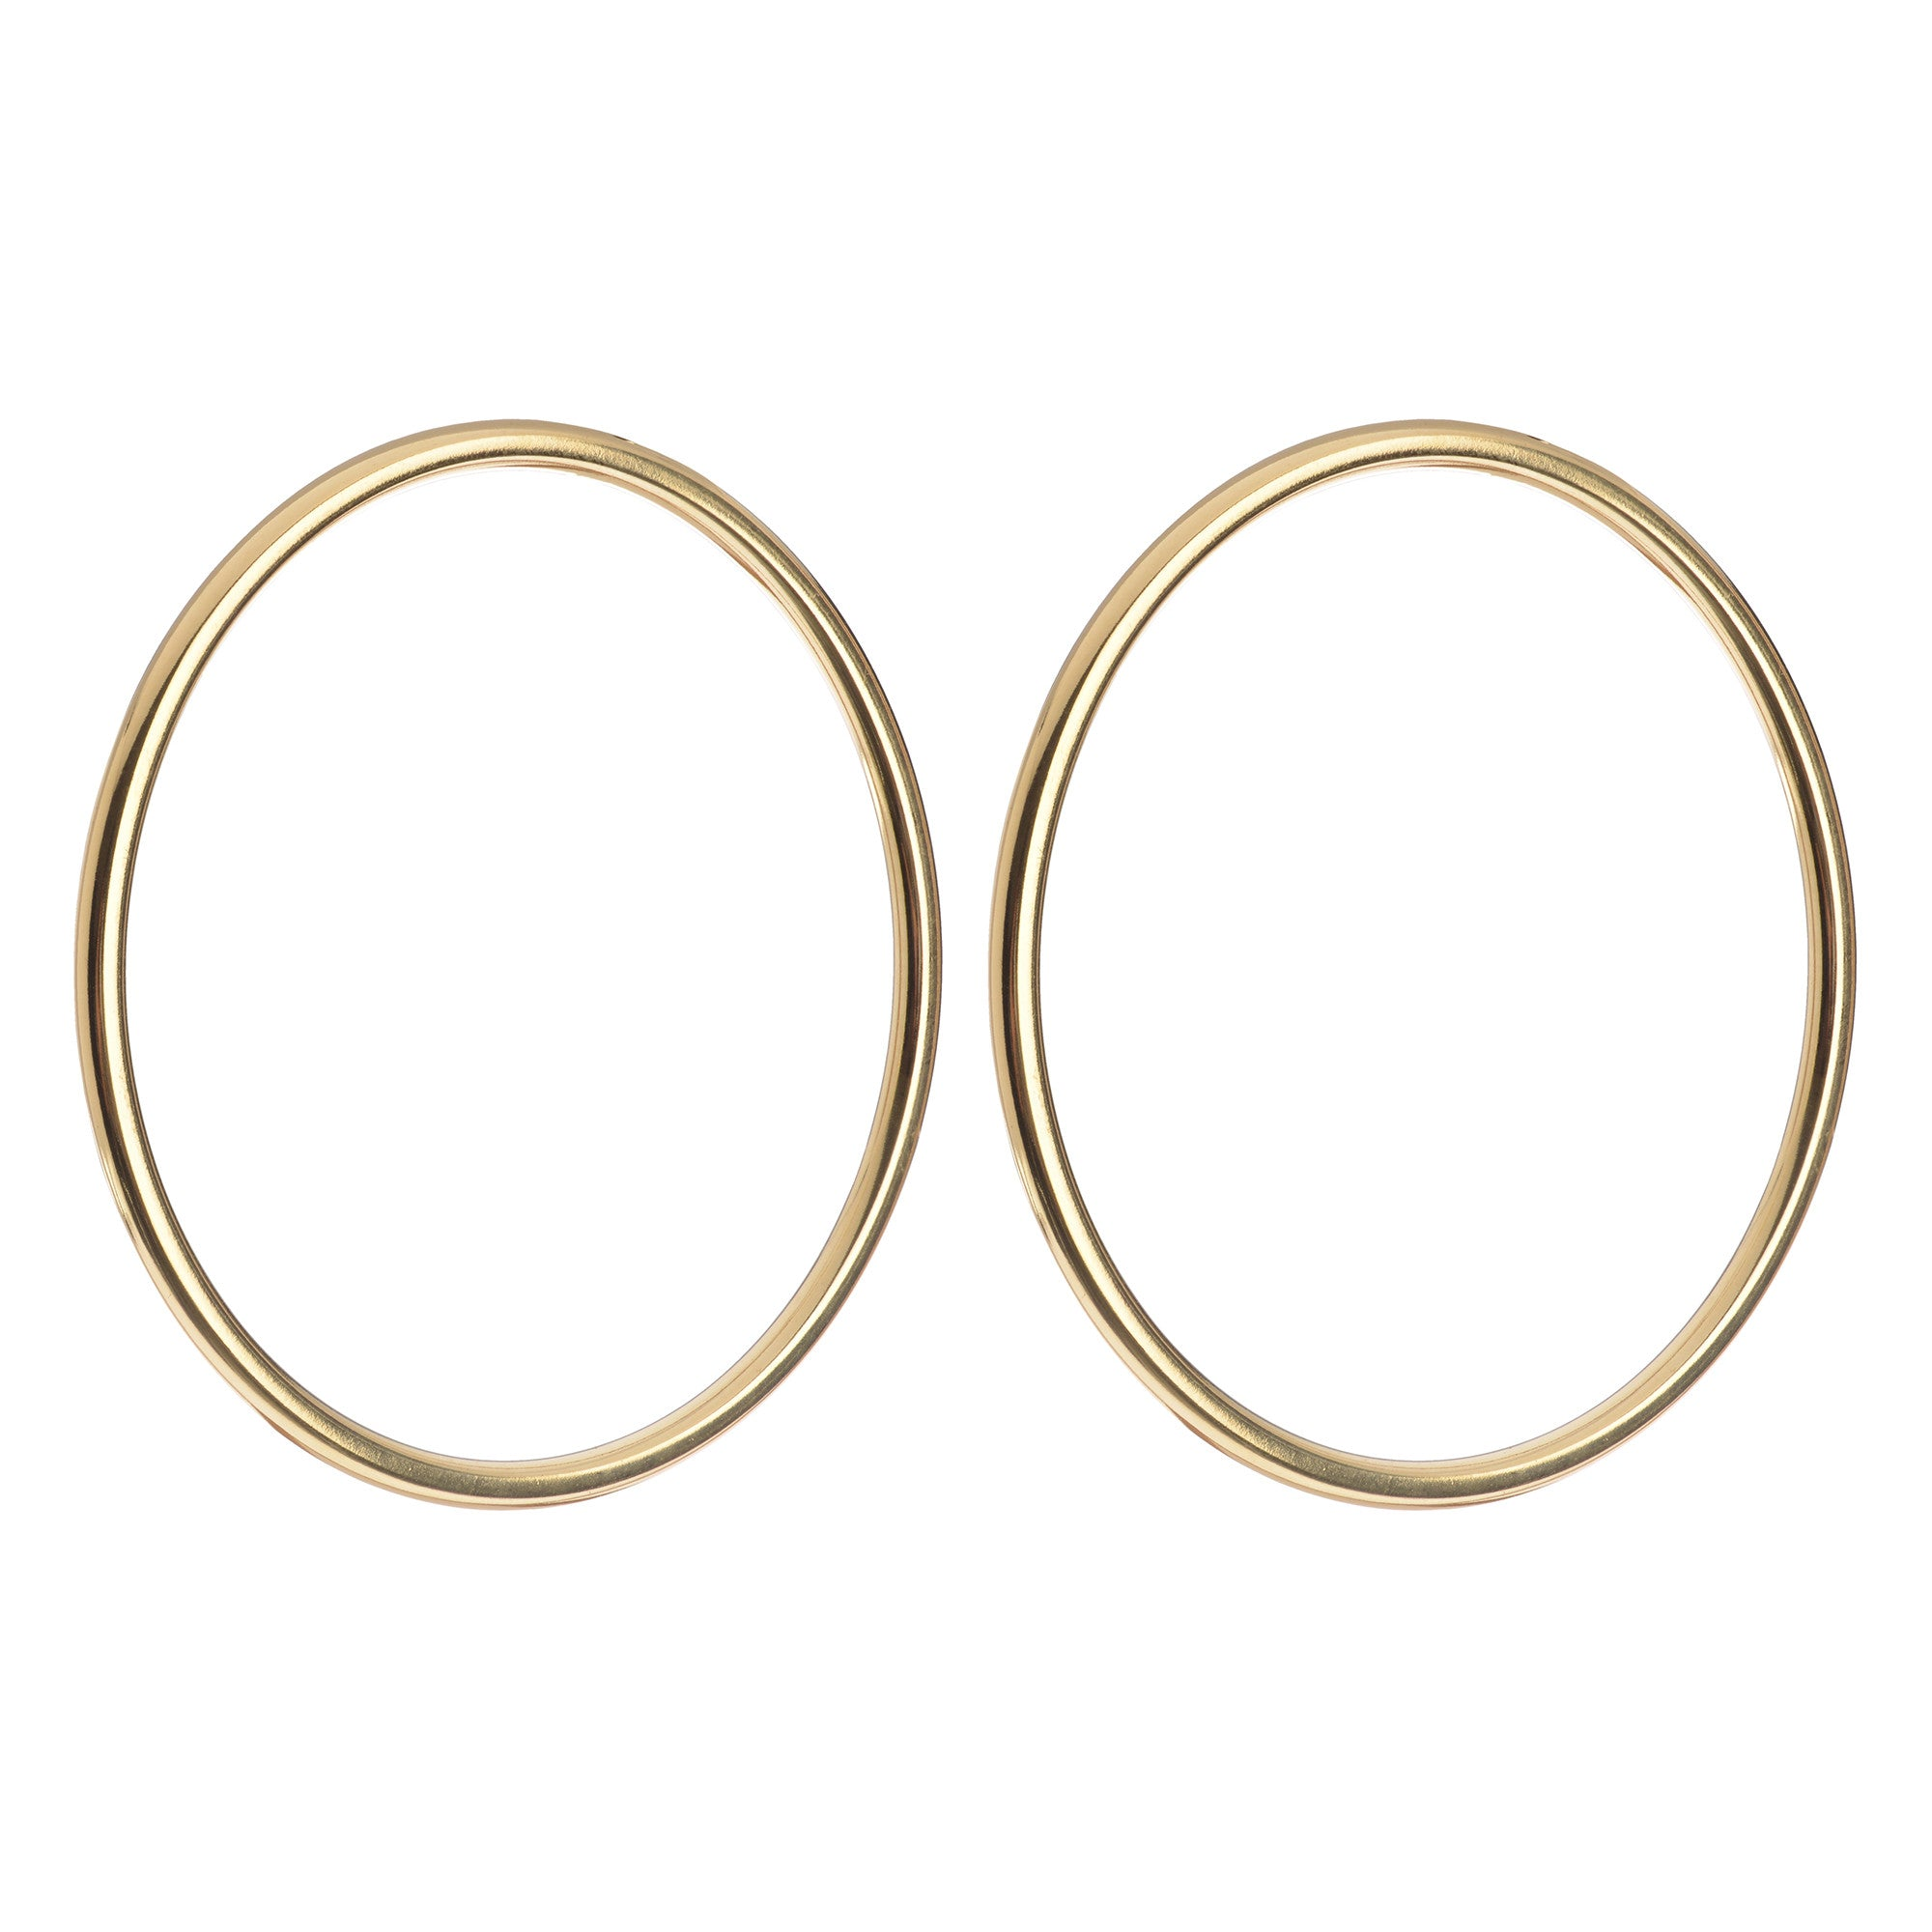 fi img circle earrings shop